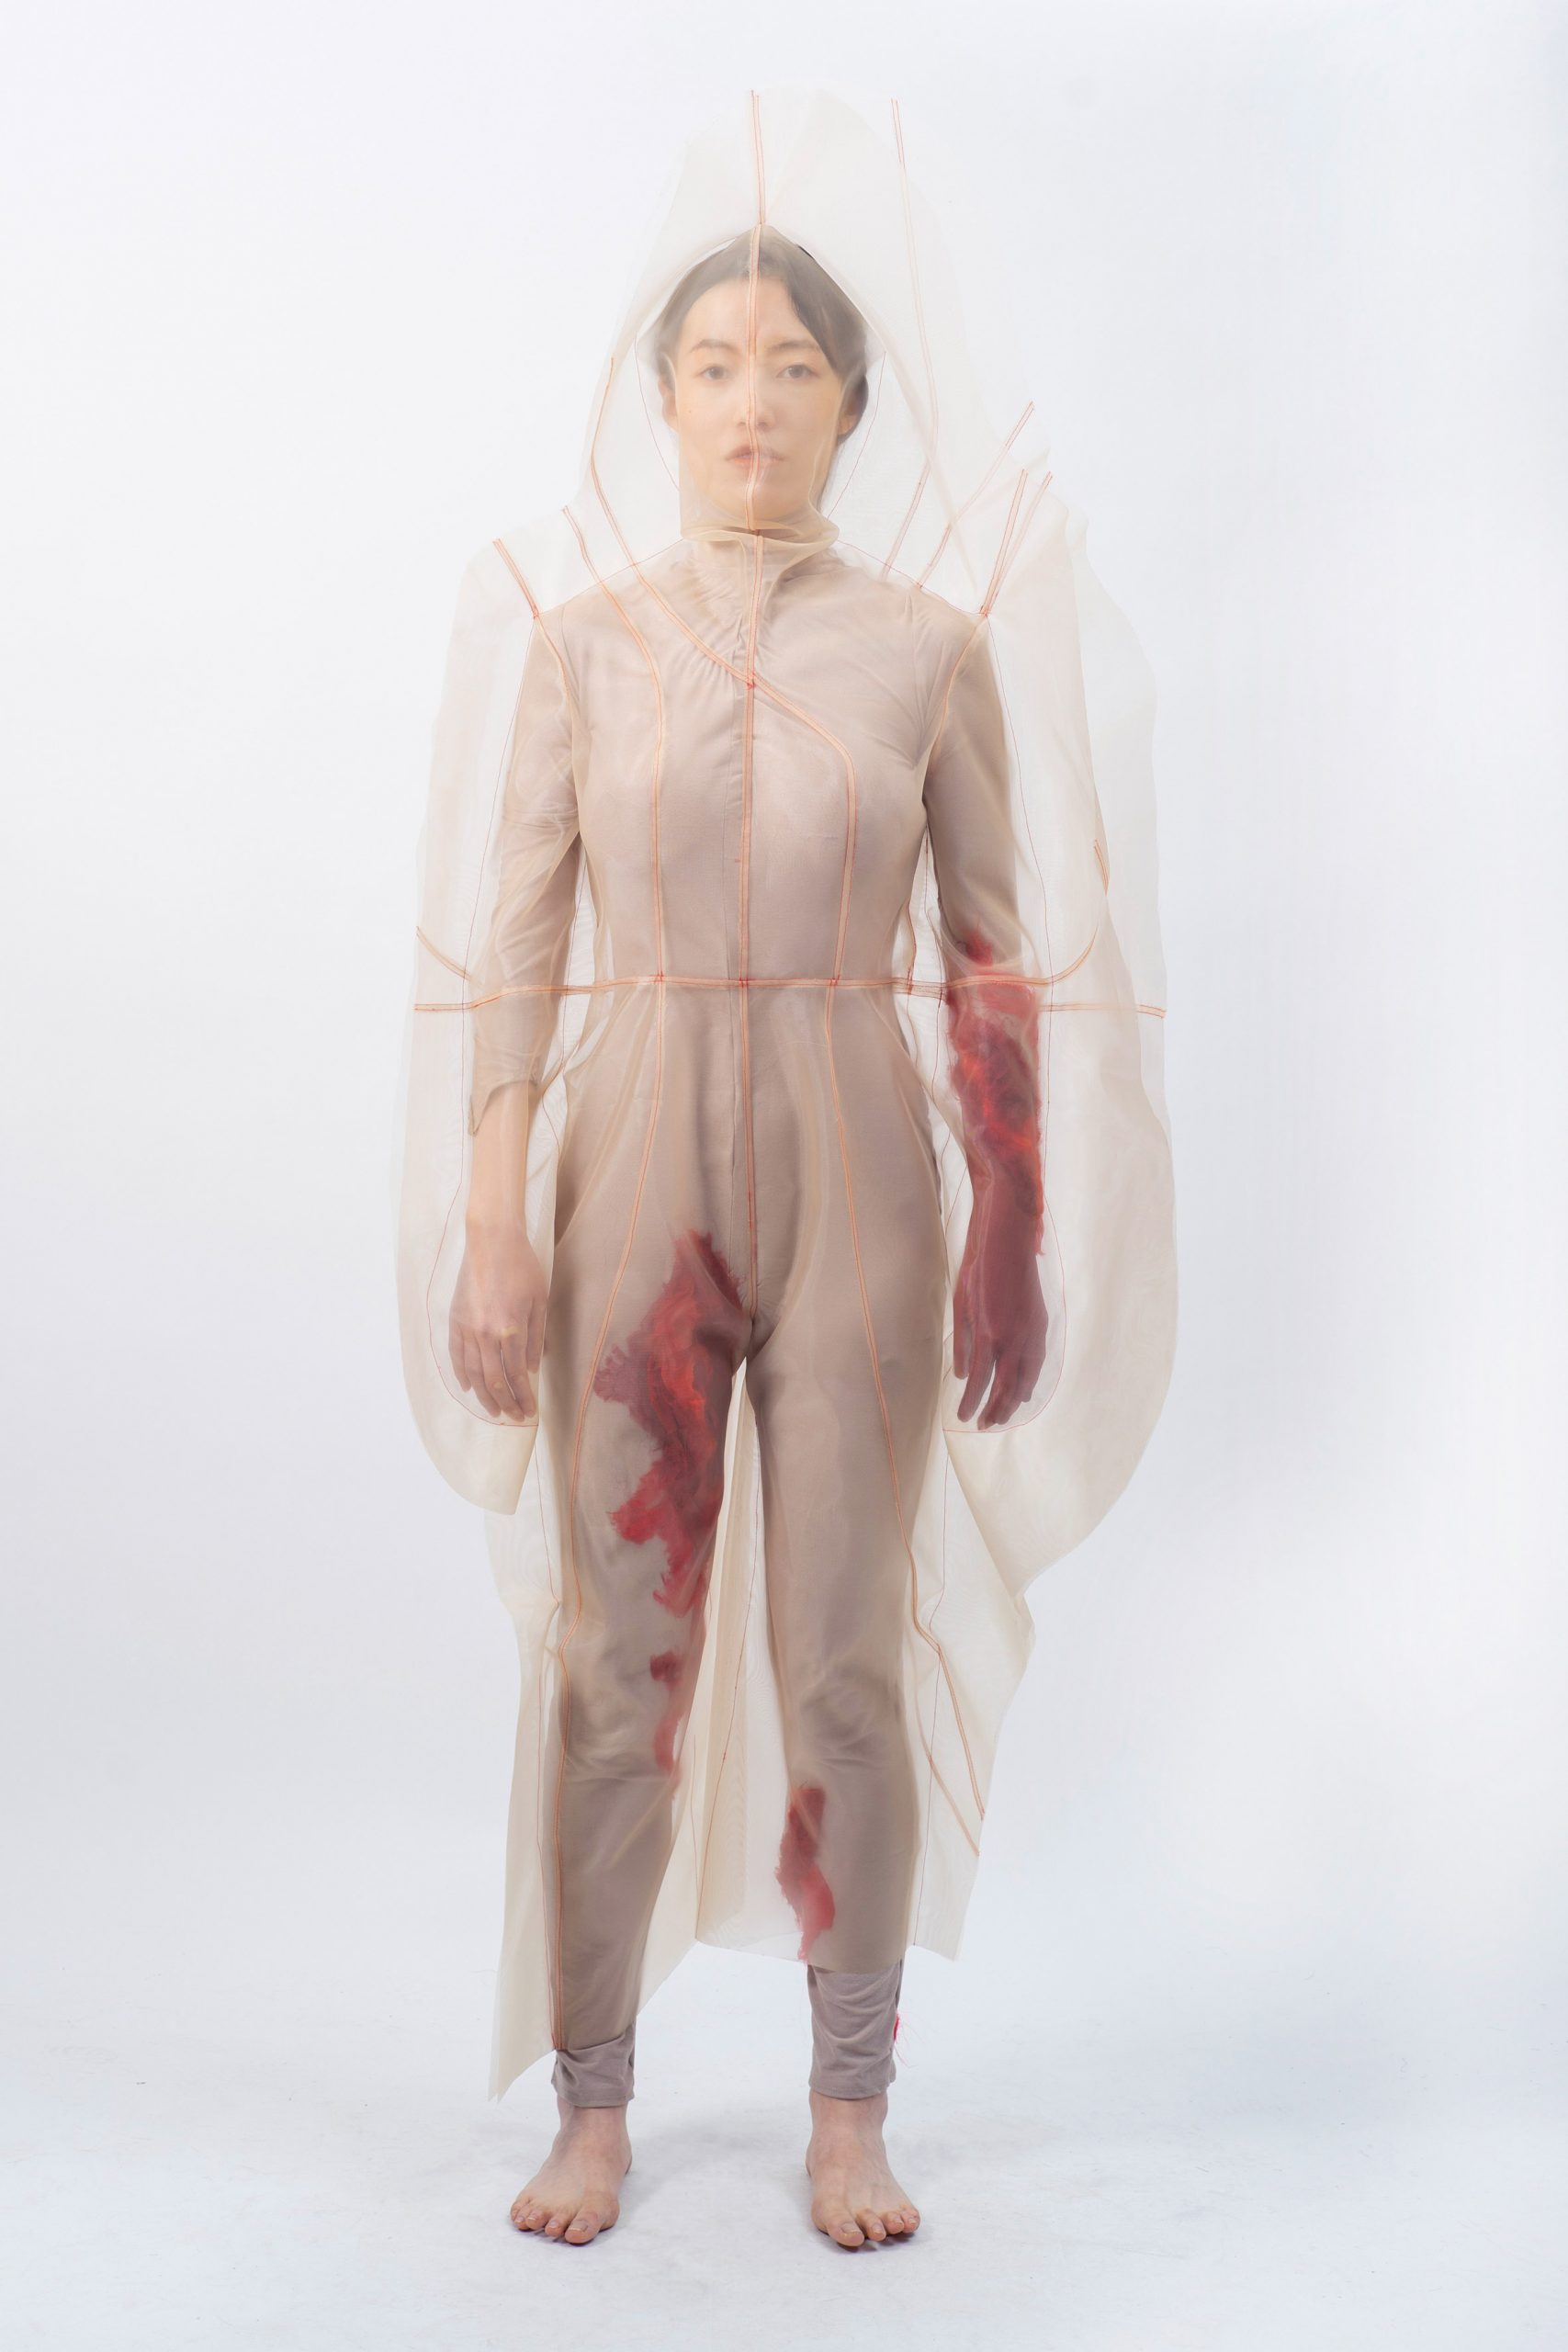 Violet Zhou translates mental states into ethereal fashion collection